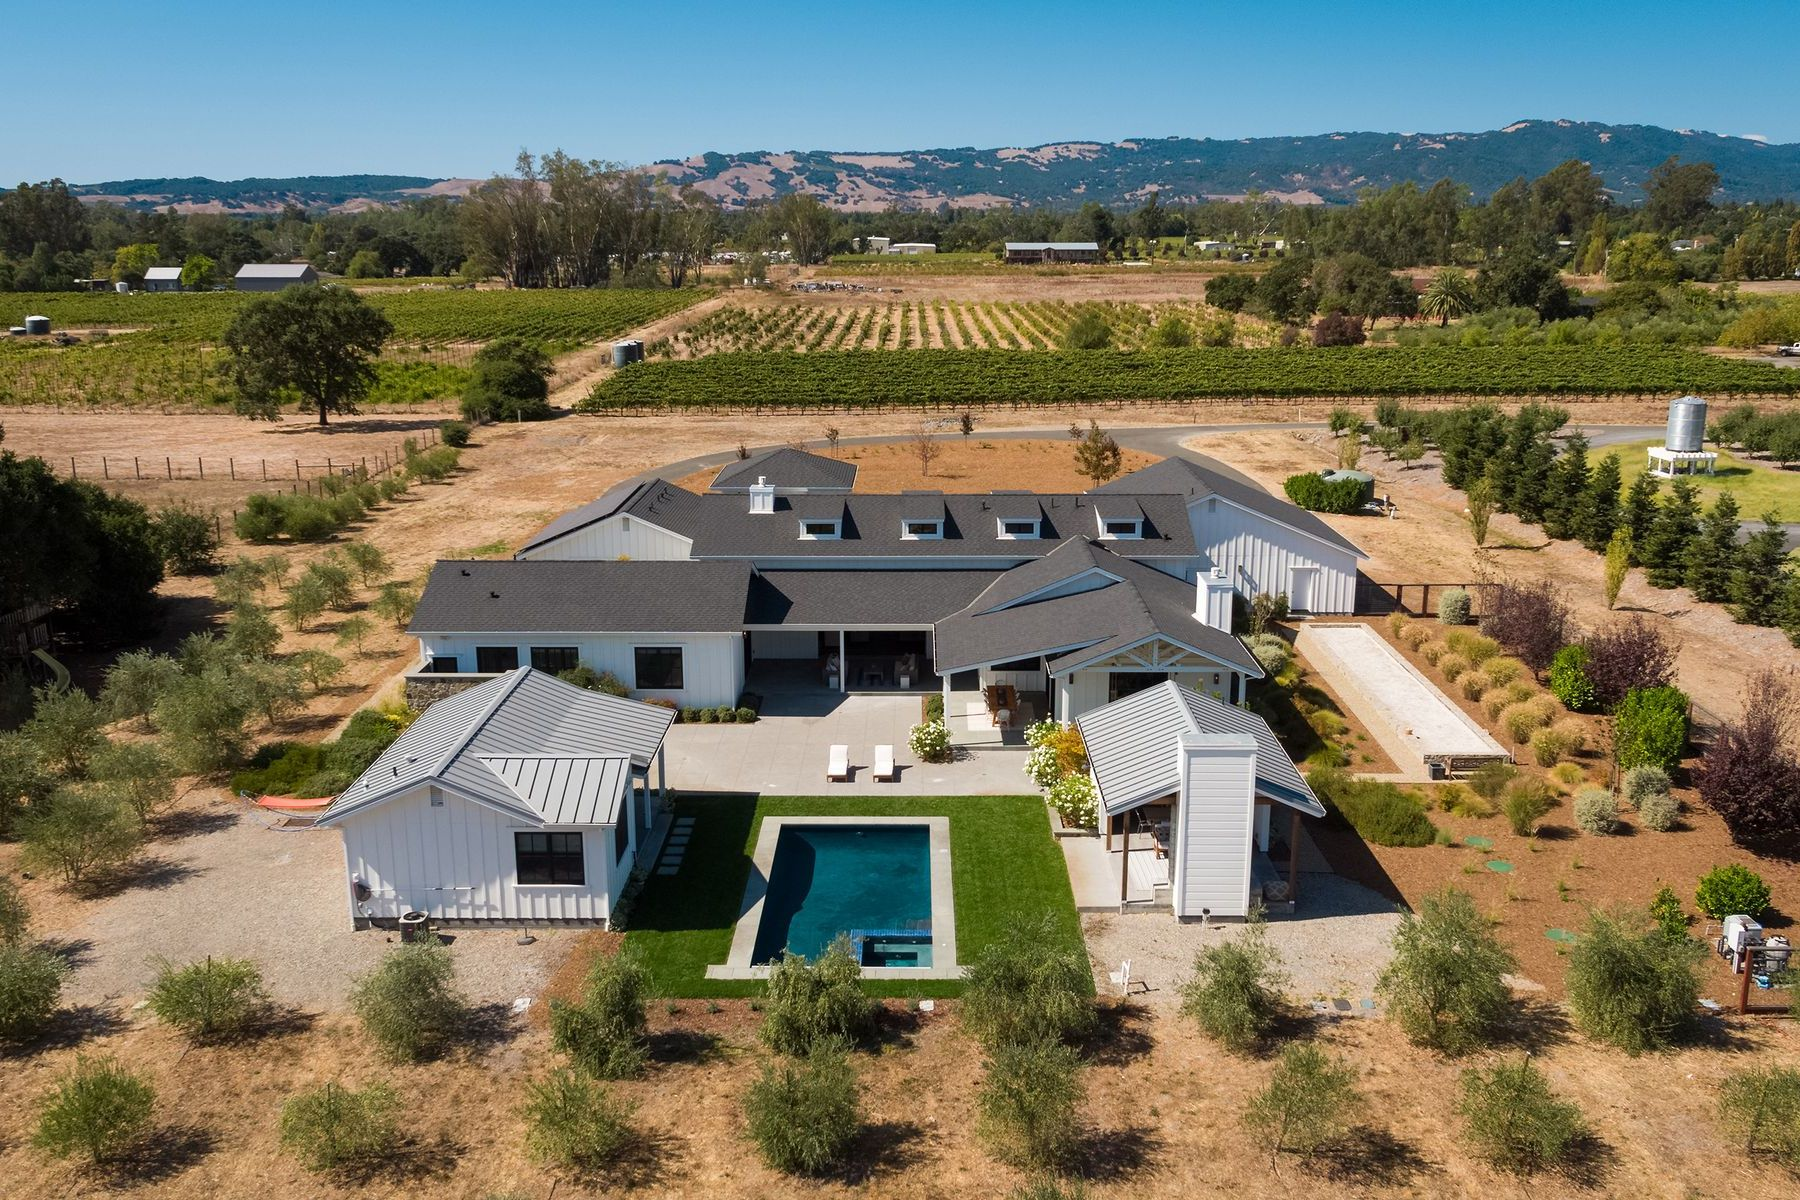 Single Family Homes for Sale at Modern Sonoma Farmhouse - 5± Acres 20376 Wolf Meadow Ln Sonoma, California 95476 United States